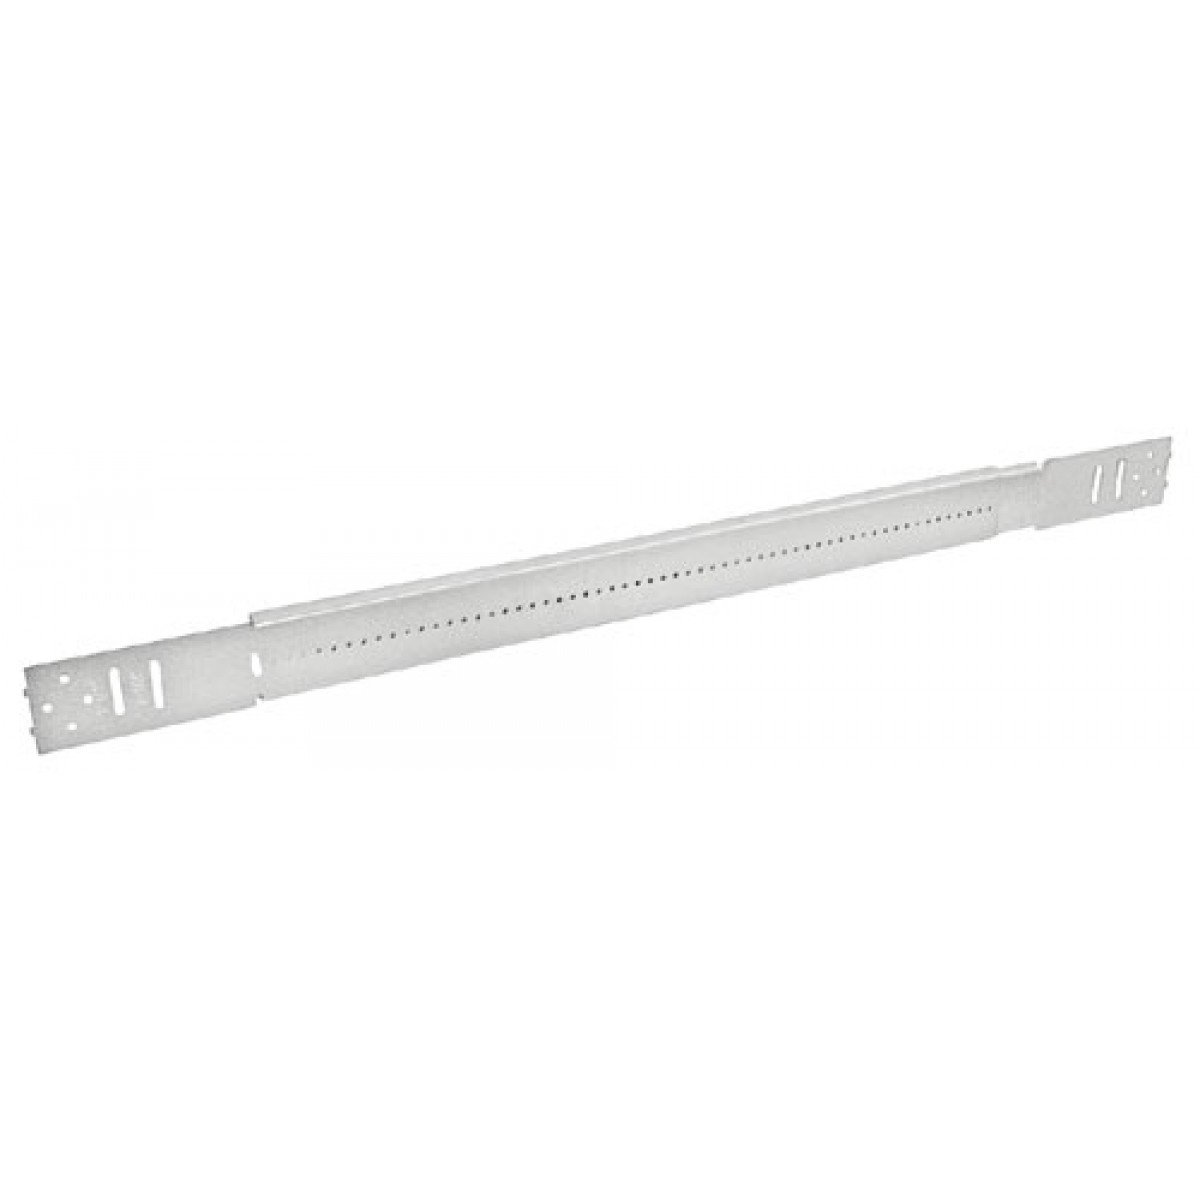 2 Pcs, Galvanized Steel Adjustable Length Box Bar Hanger, For Deep Boxes, 11 to 18 In